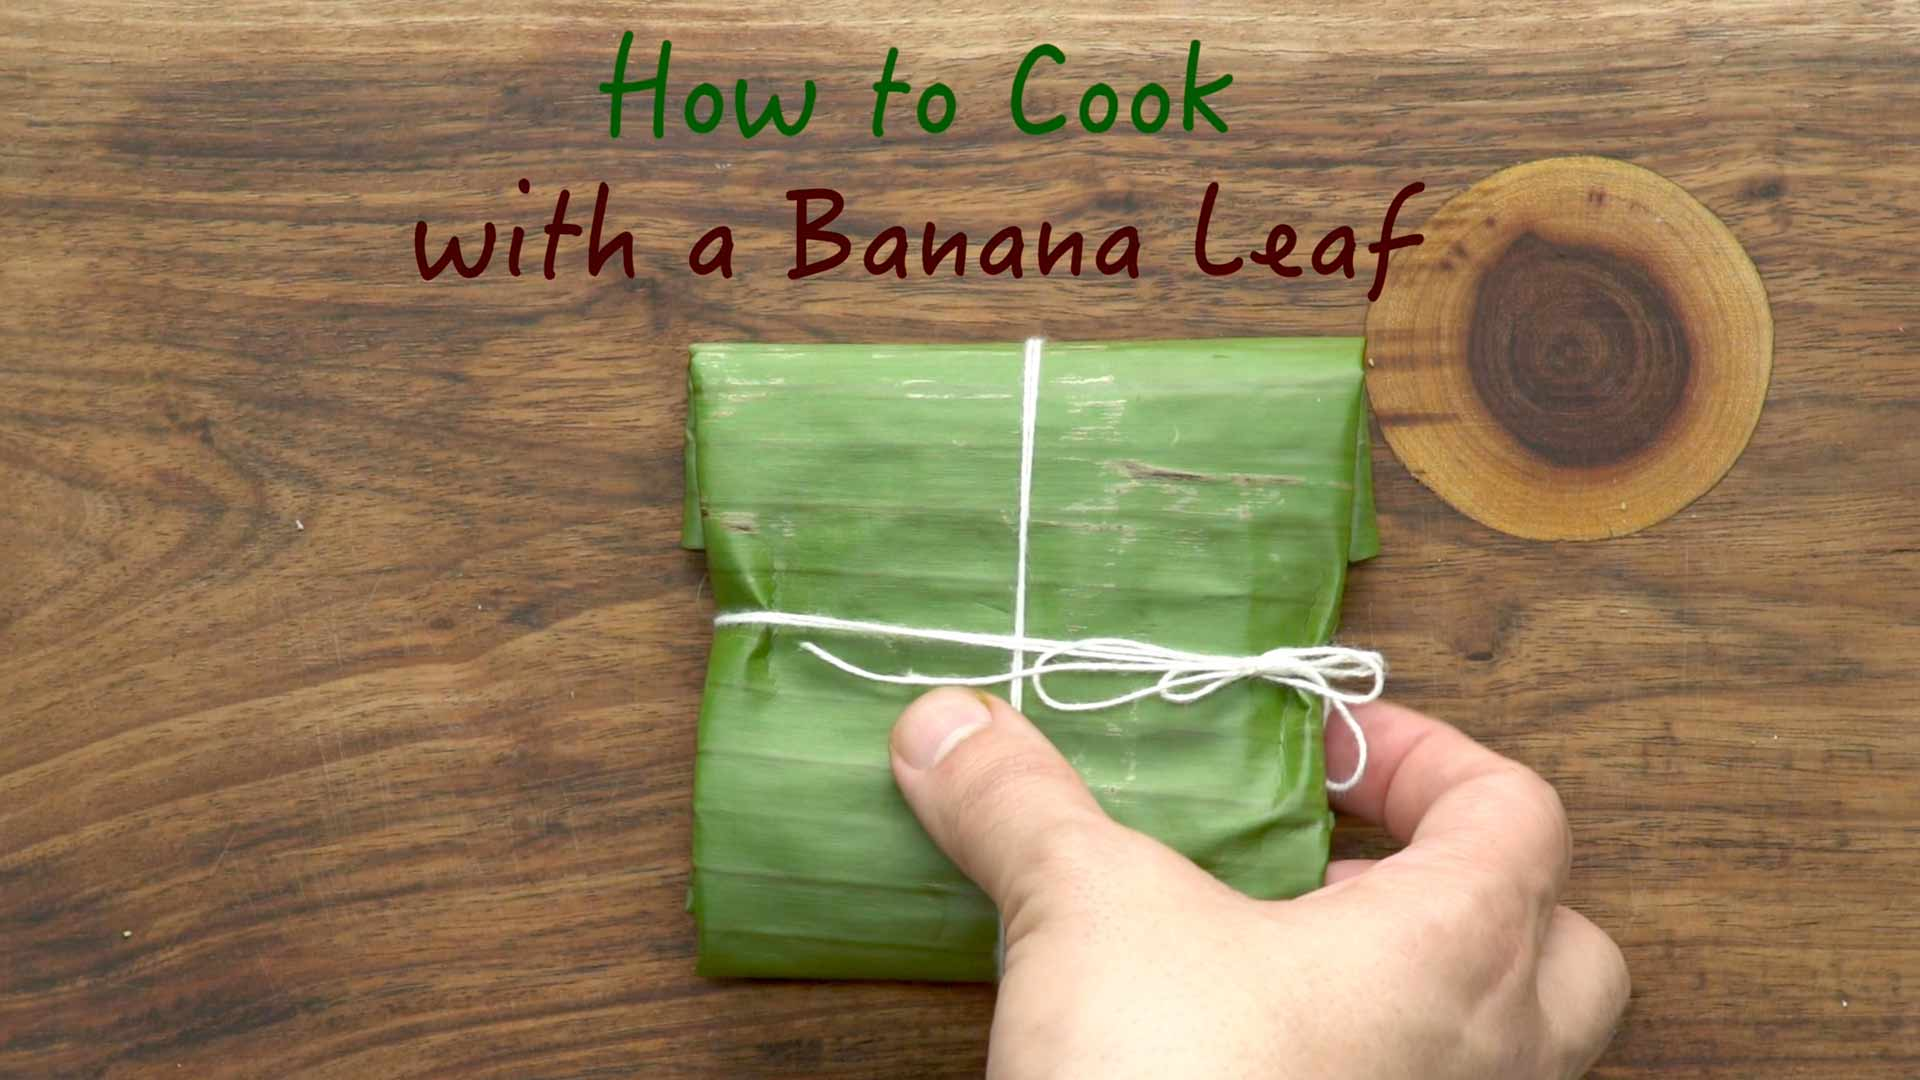 How to Cook with a Banana Leaf